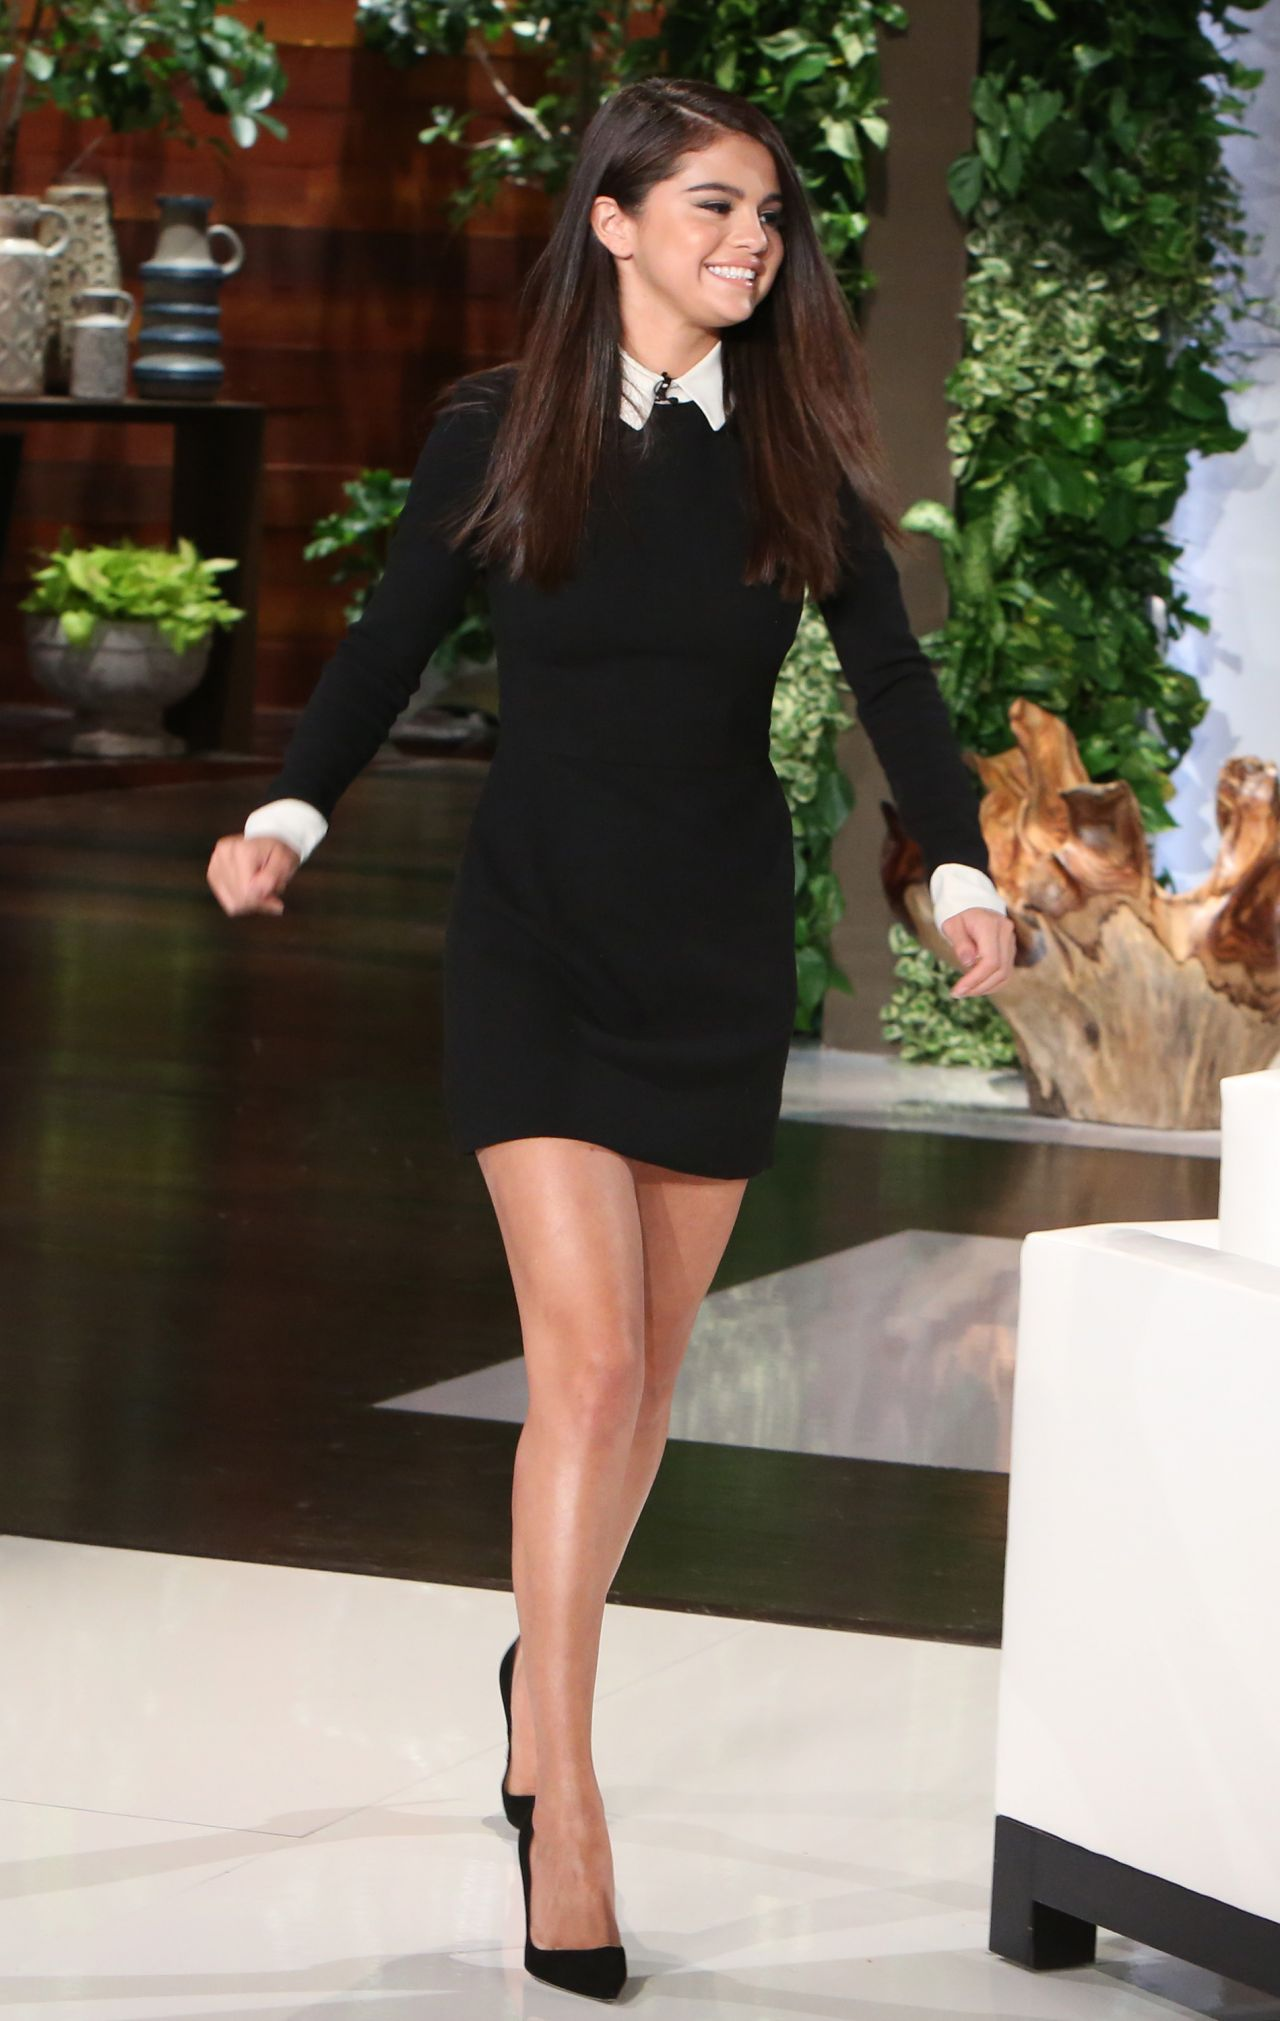 Selena Gomez Appeared on Ellen DeGeneres Show in Burbank - October 2014